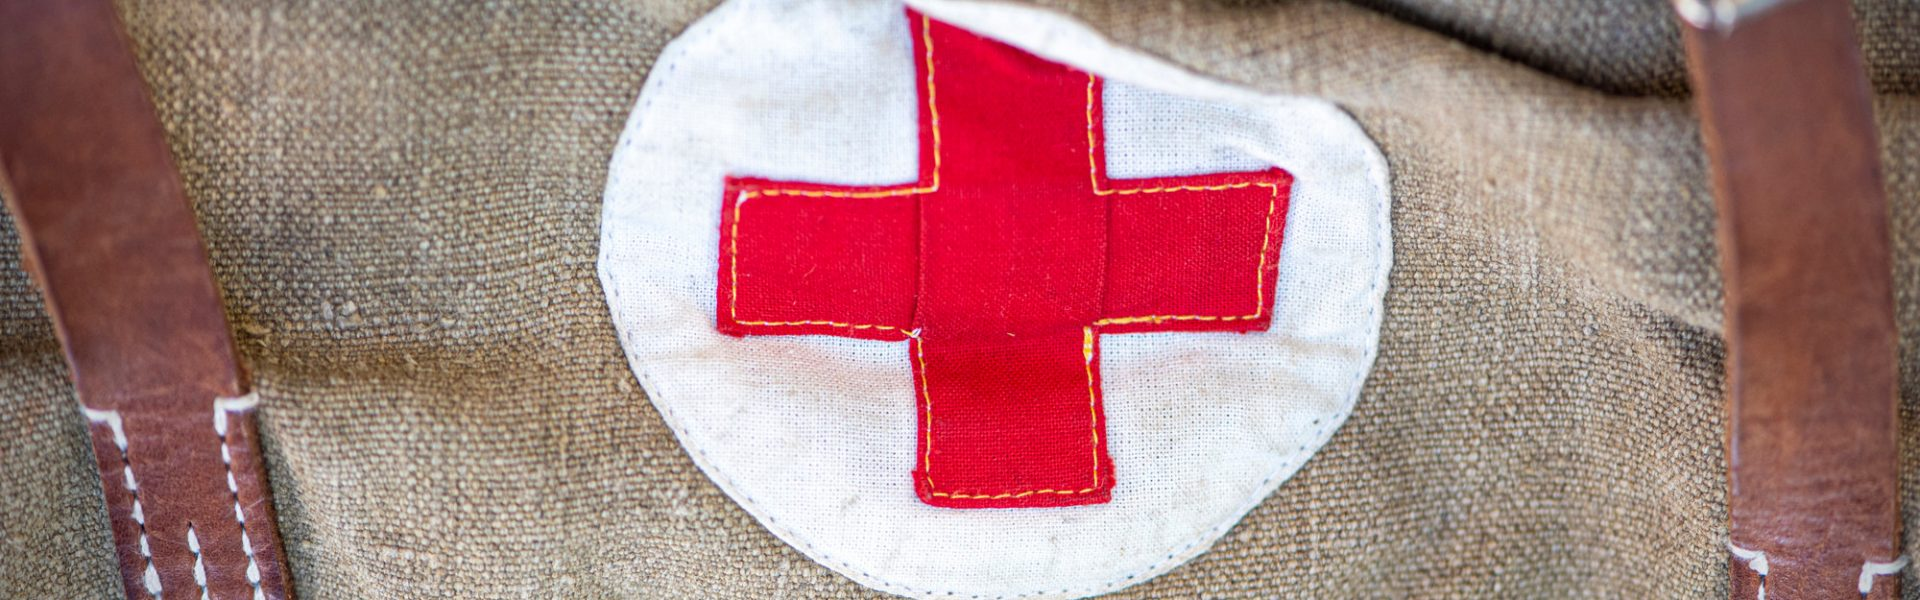 close-up-vintage-military-bag-with-red-cross-soviet-bag-for-medicines-old-bag-for-the-military-the-second-world-war (1)